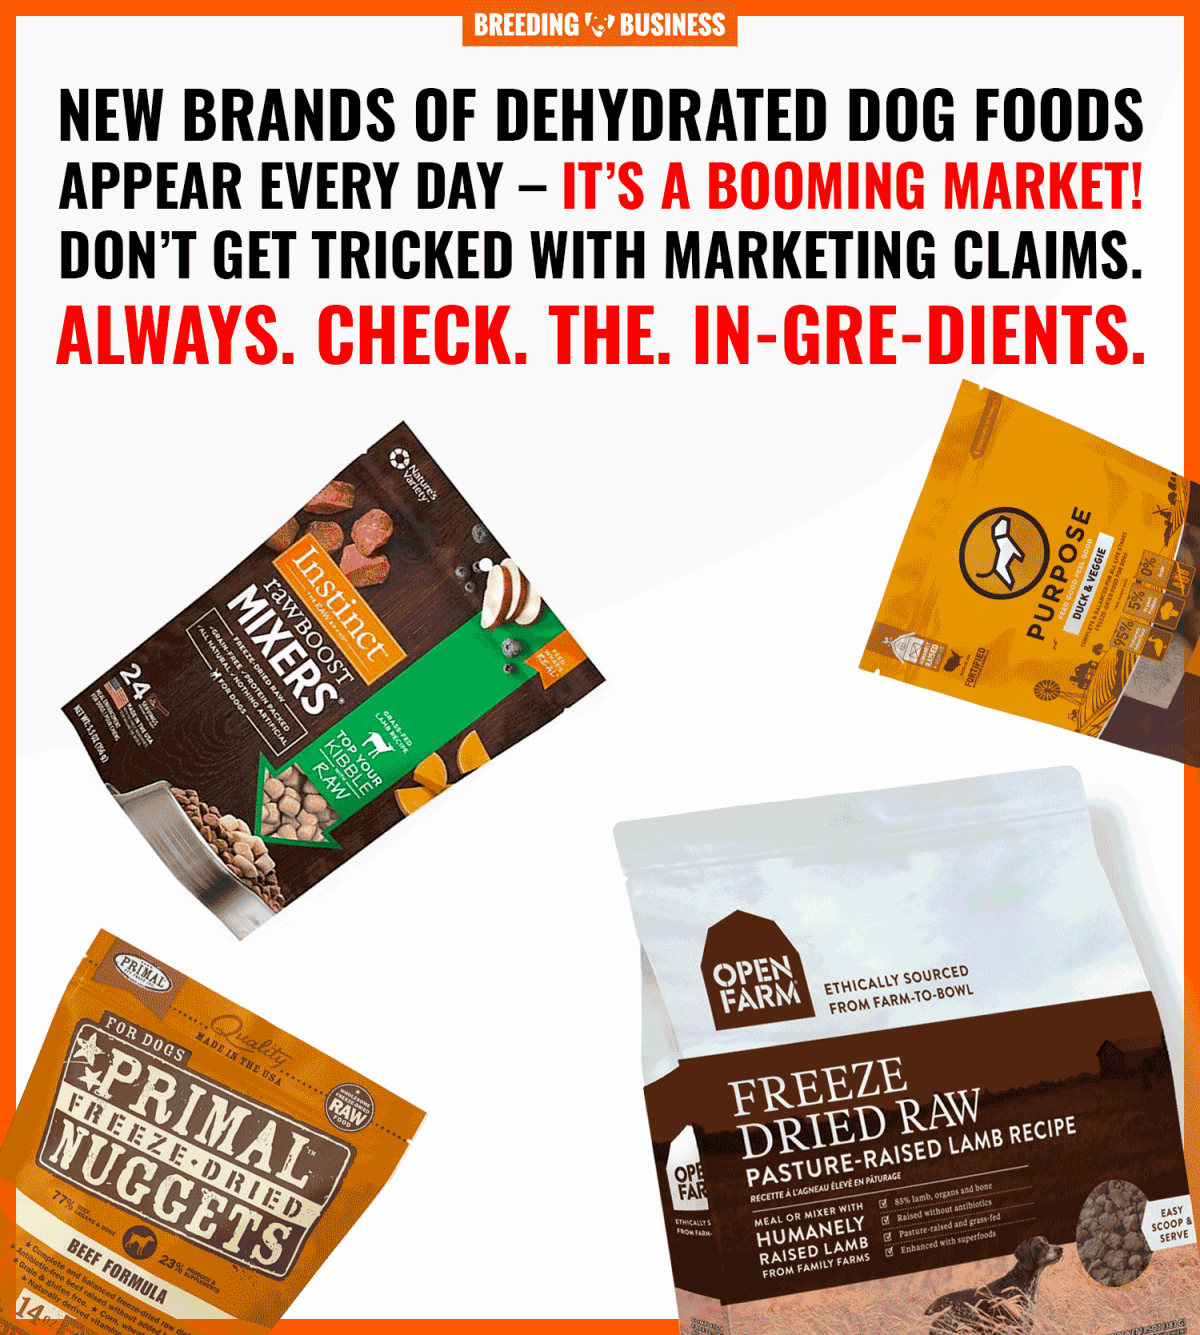 dehydrated dog food brands